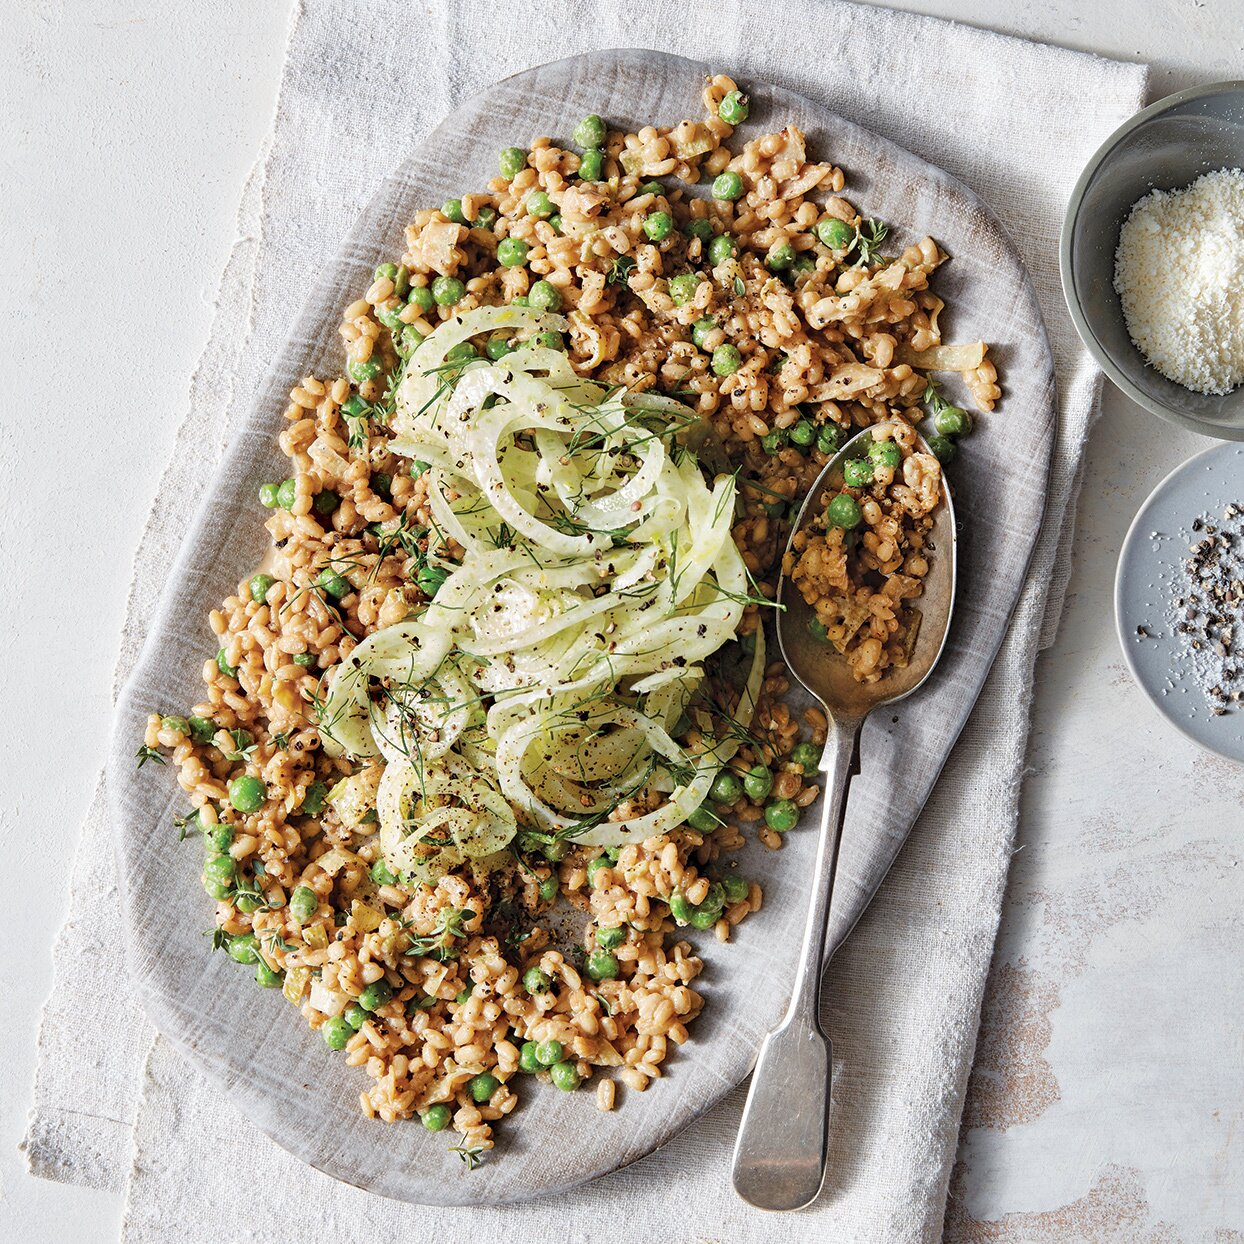 Slow-Cooker Parmesan & Pea Farro with Fennel Salad